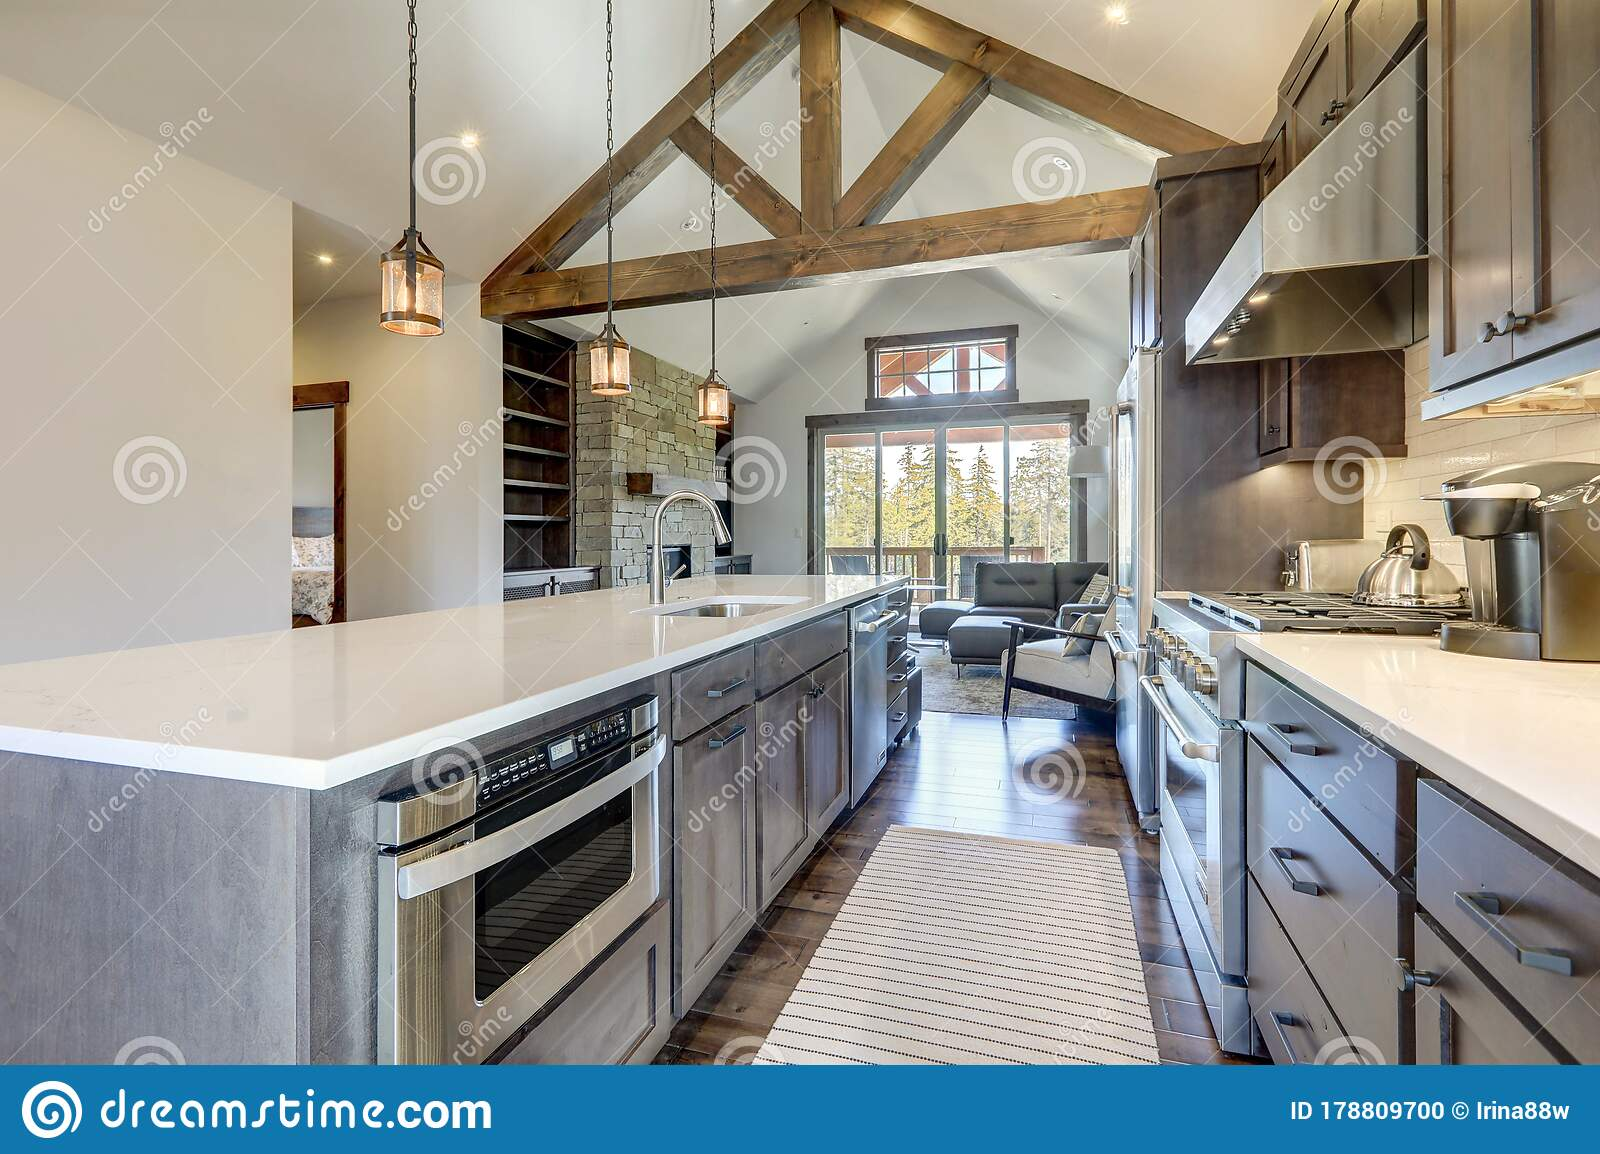 Image of: Amazing Modern And Rustic Luxury Kitchen With Vaulted Ceiling And Wooden Beams Long Island With White Quarts Countertop Stock Photo Image Of Colorful Furnished 178809700